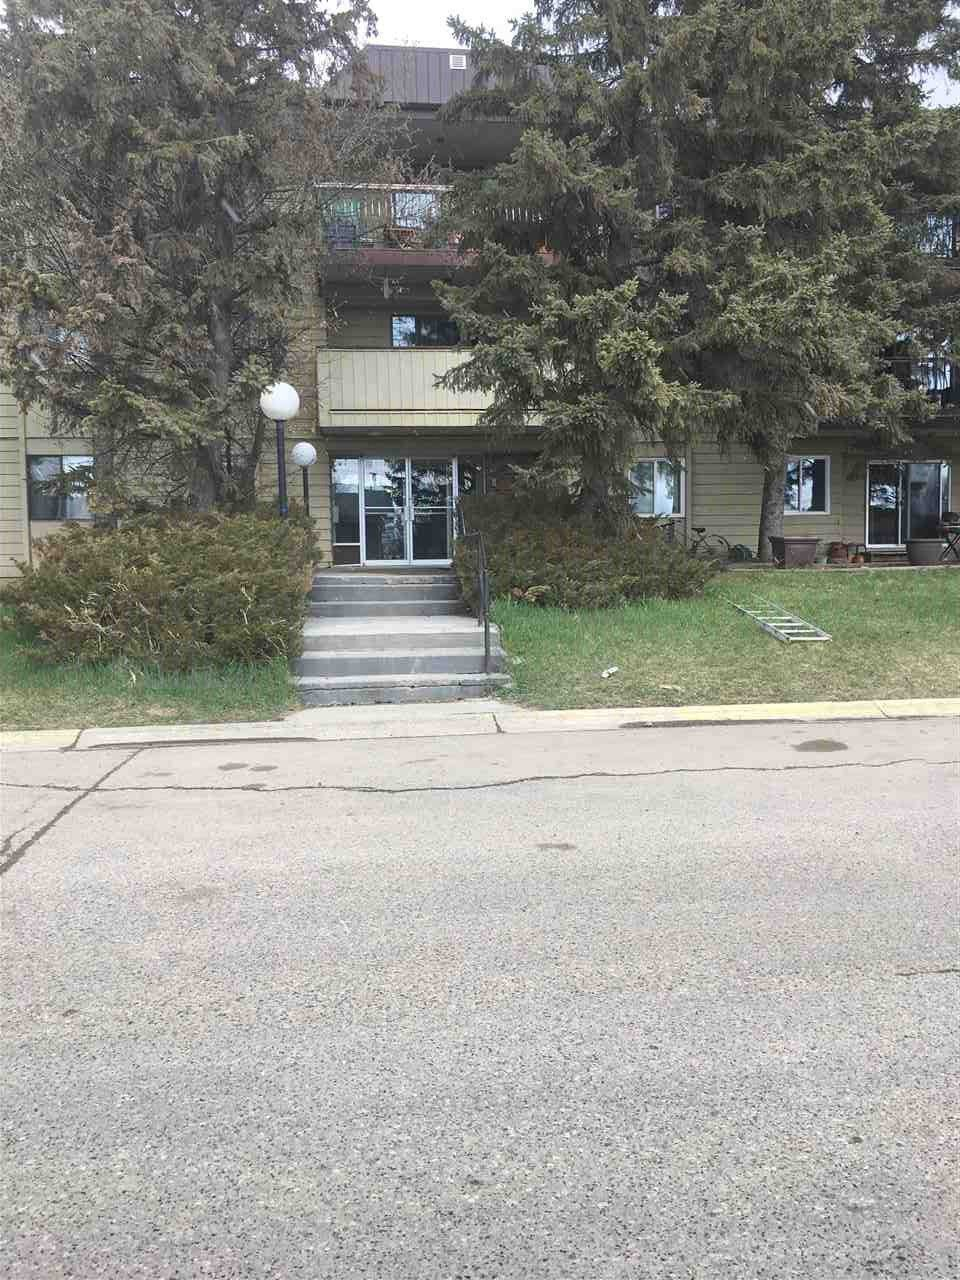 """Main Photo: 302 10216 102 Avenue in Fort St. John: Fort St. John - City NW Condo for sale in """"ALTOMAR APARTMENTS"""" (Fort St. John (Zone 60))  : MLS®# R2362710"""